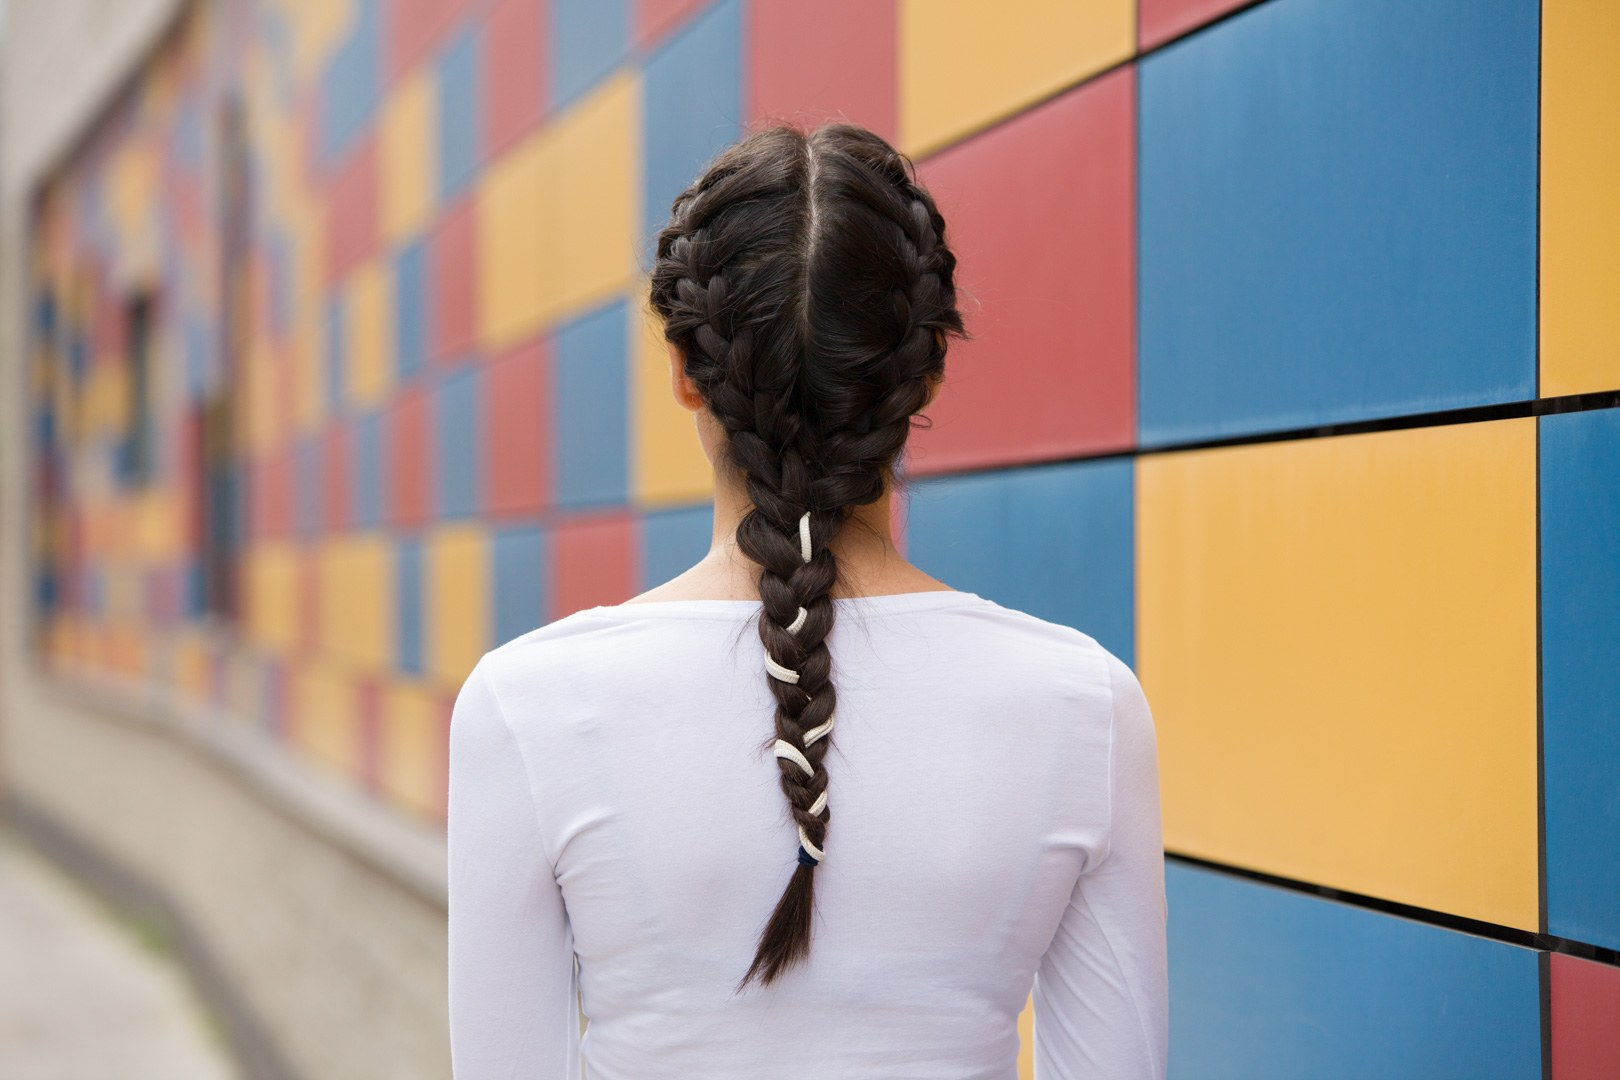 Gym hair styling tips: braid all your hair